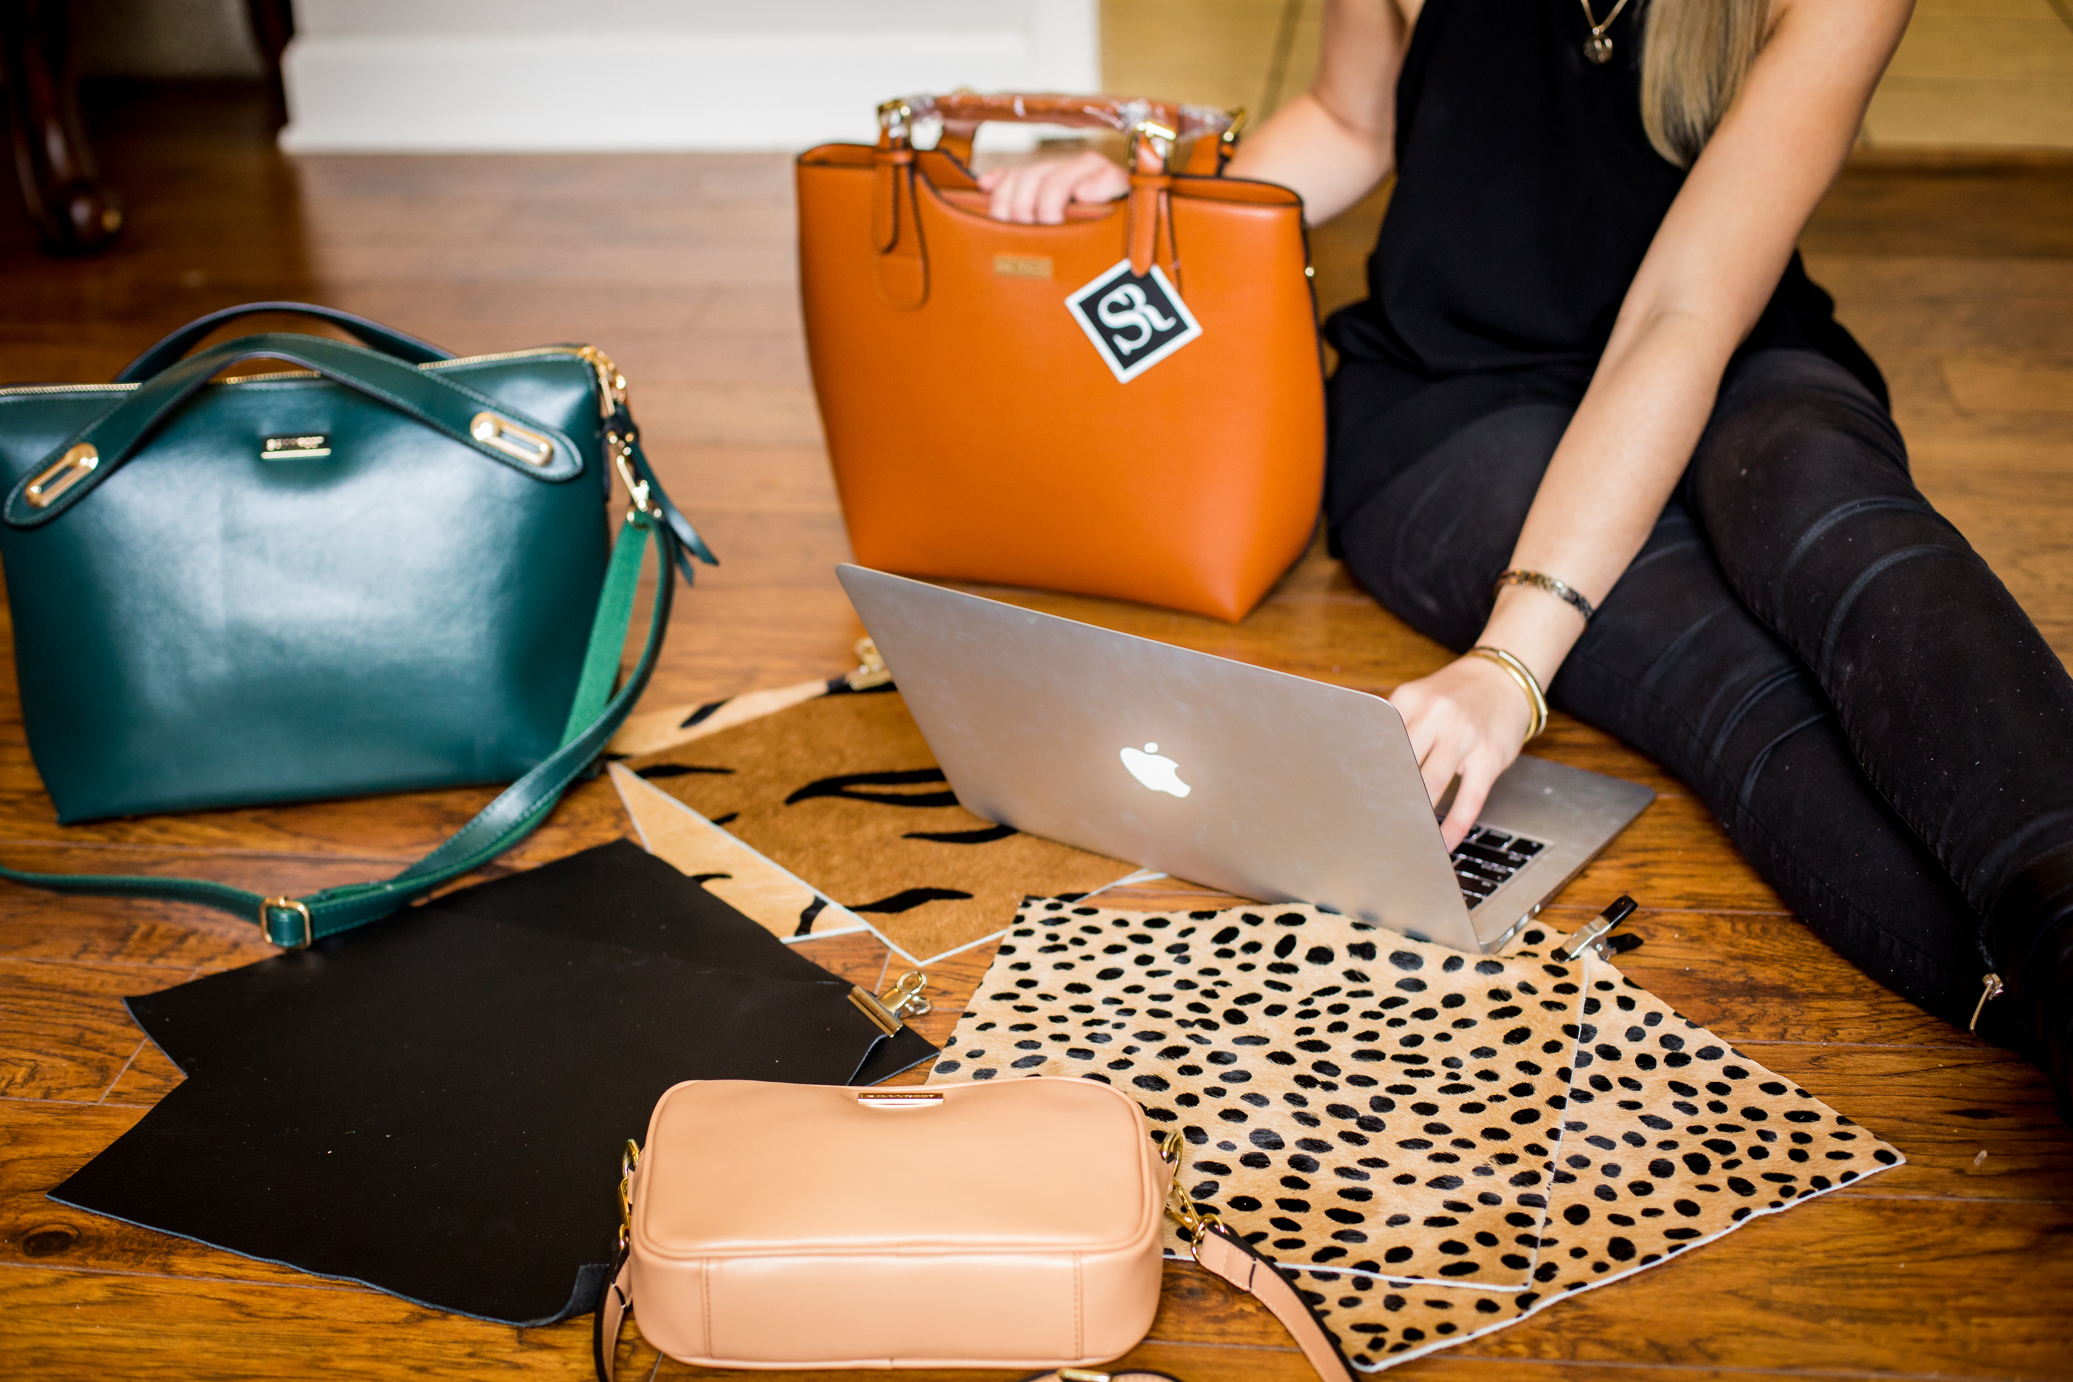 cf44cdc286 Baton Rouge designer set out to make quality handbags at a better ...